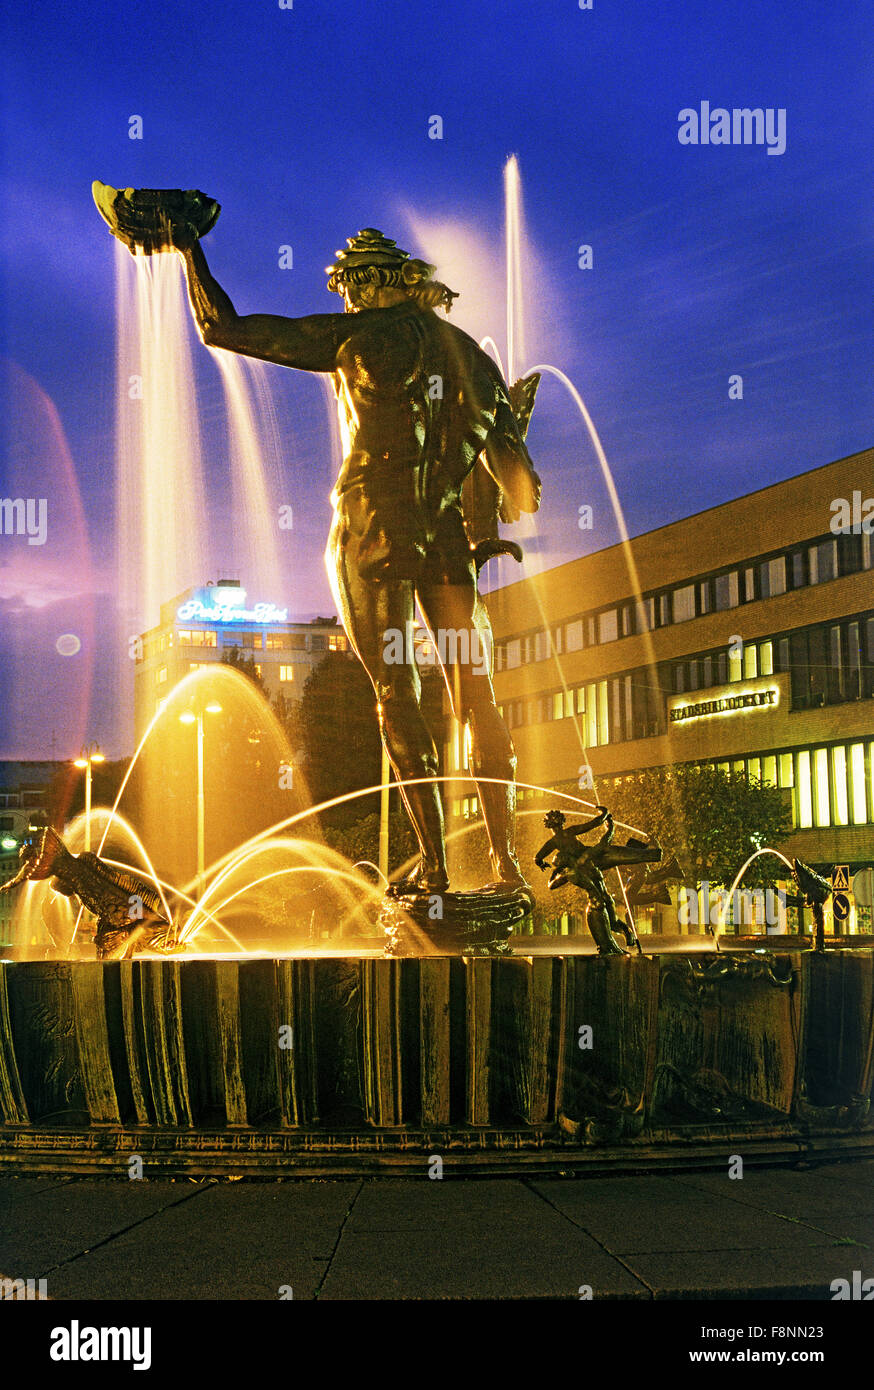 Statue of Poseidon by Carl Milles on Avenyen in Gothenburg Sweden at night - Stock Image